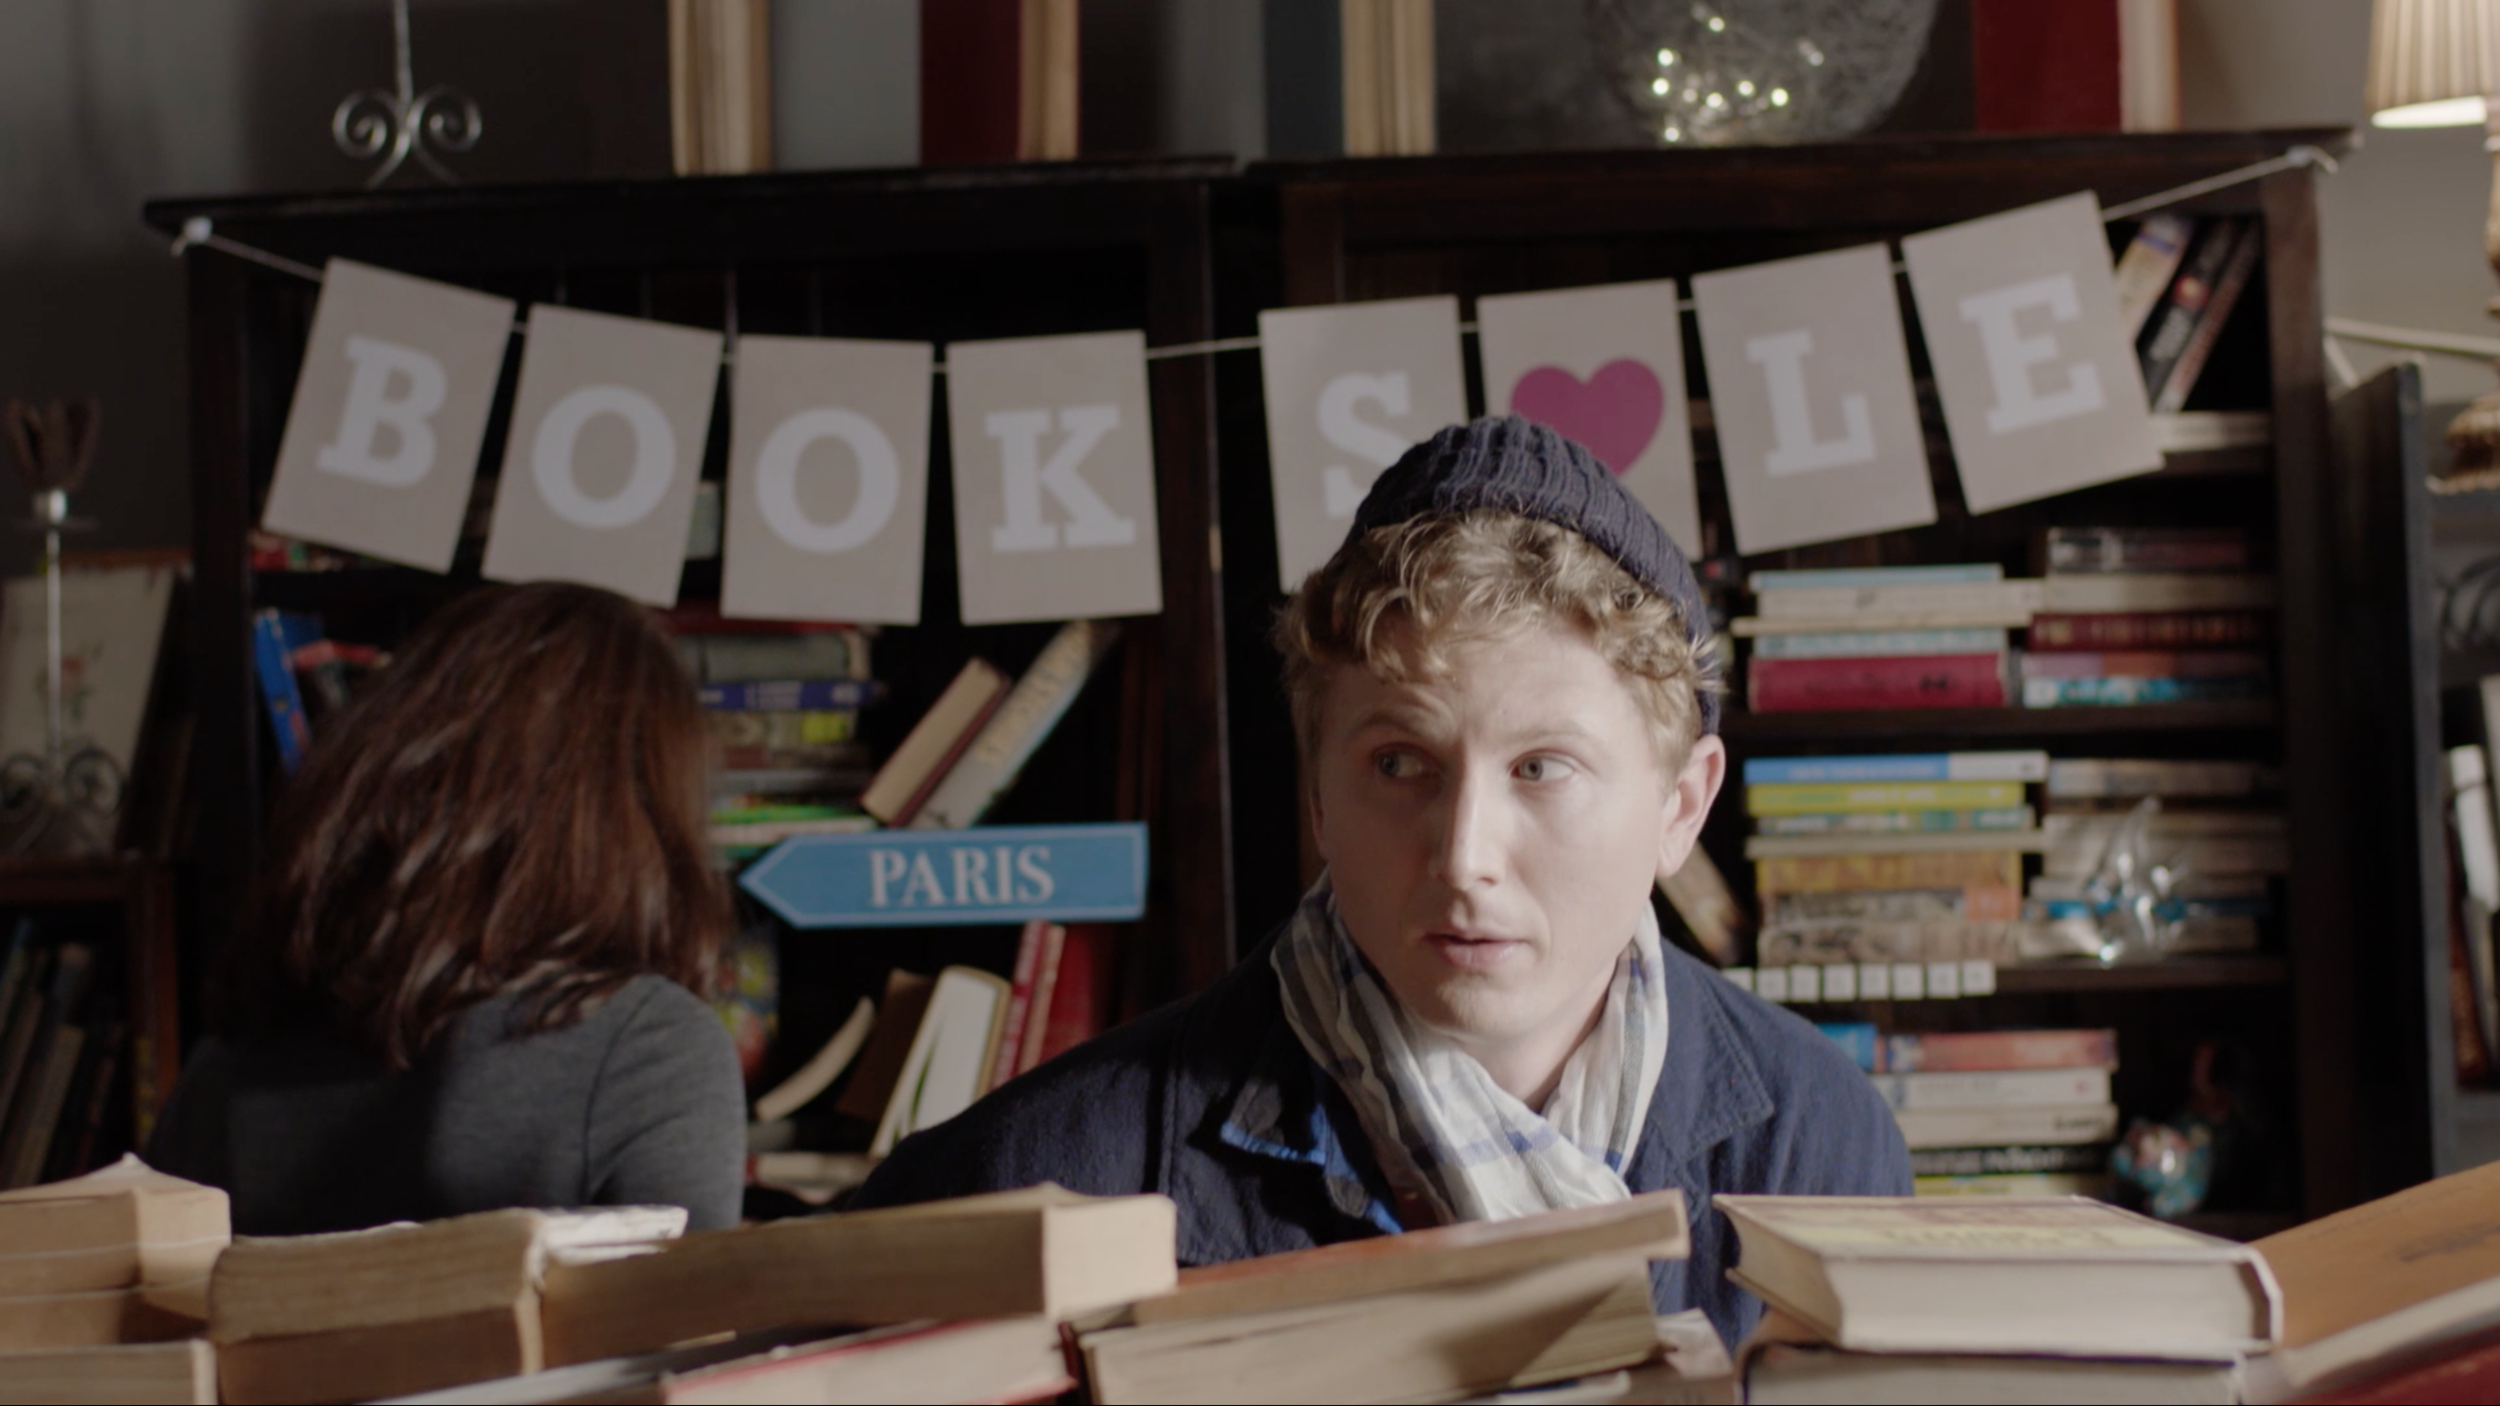 Donald (Alastair Osment) on the lookout for Abbey in The Bookshop.